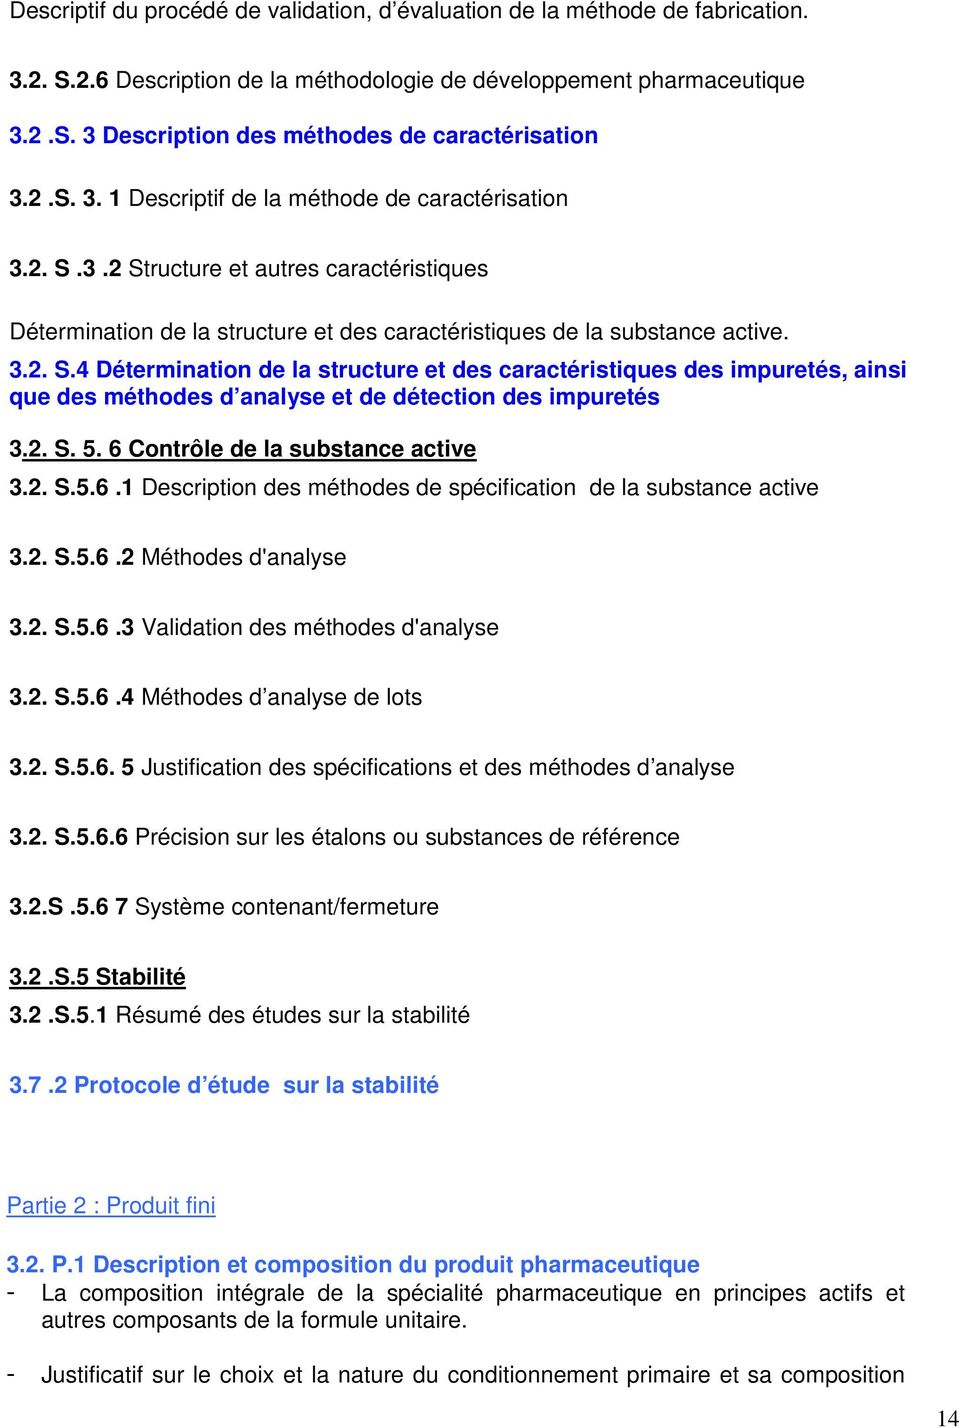 2. S. 5. 6 Contrôle de la substance active 3.2. S.5.6.1 Description des méthodes de spécification de la substance active 3.2. S.5.6.2 Méthodes d'analyse 3.2. S.5.6.3 Validation des méthodes d'analyse 3.